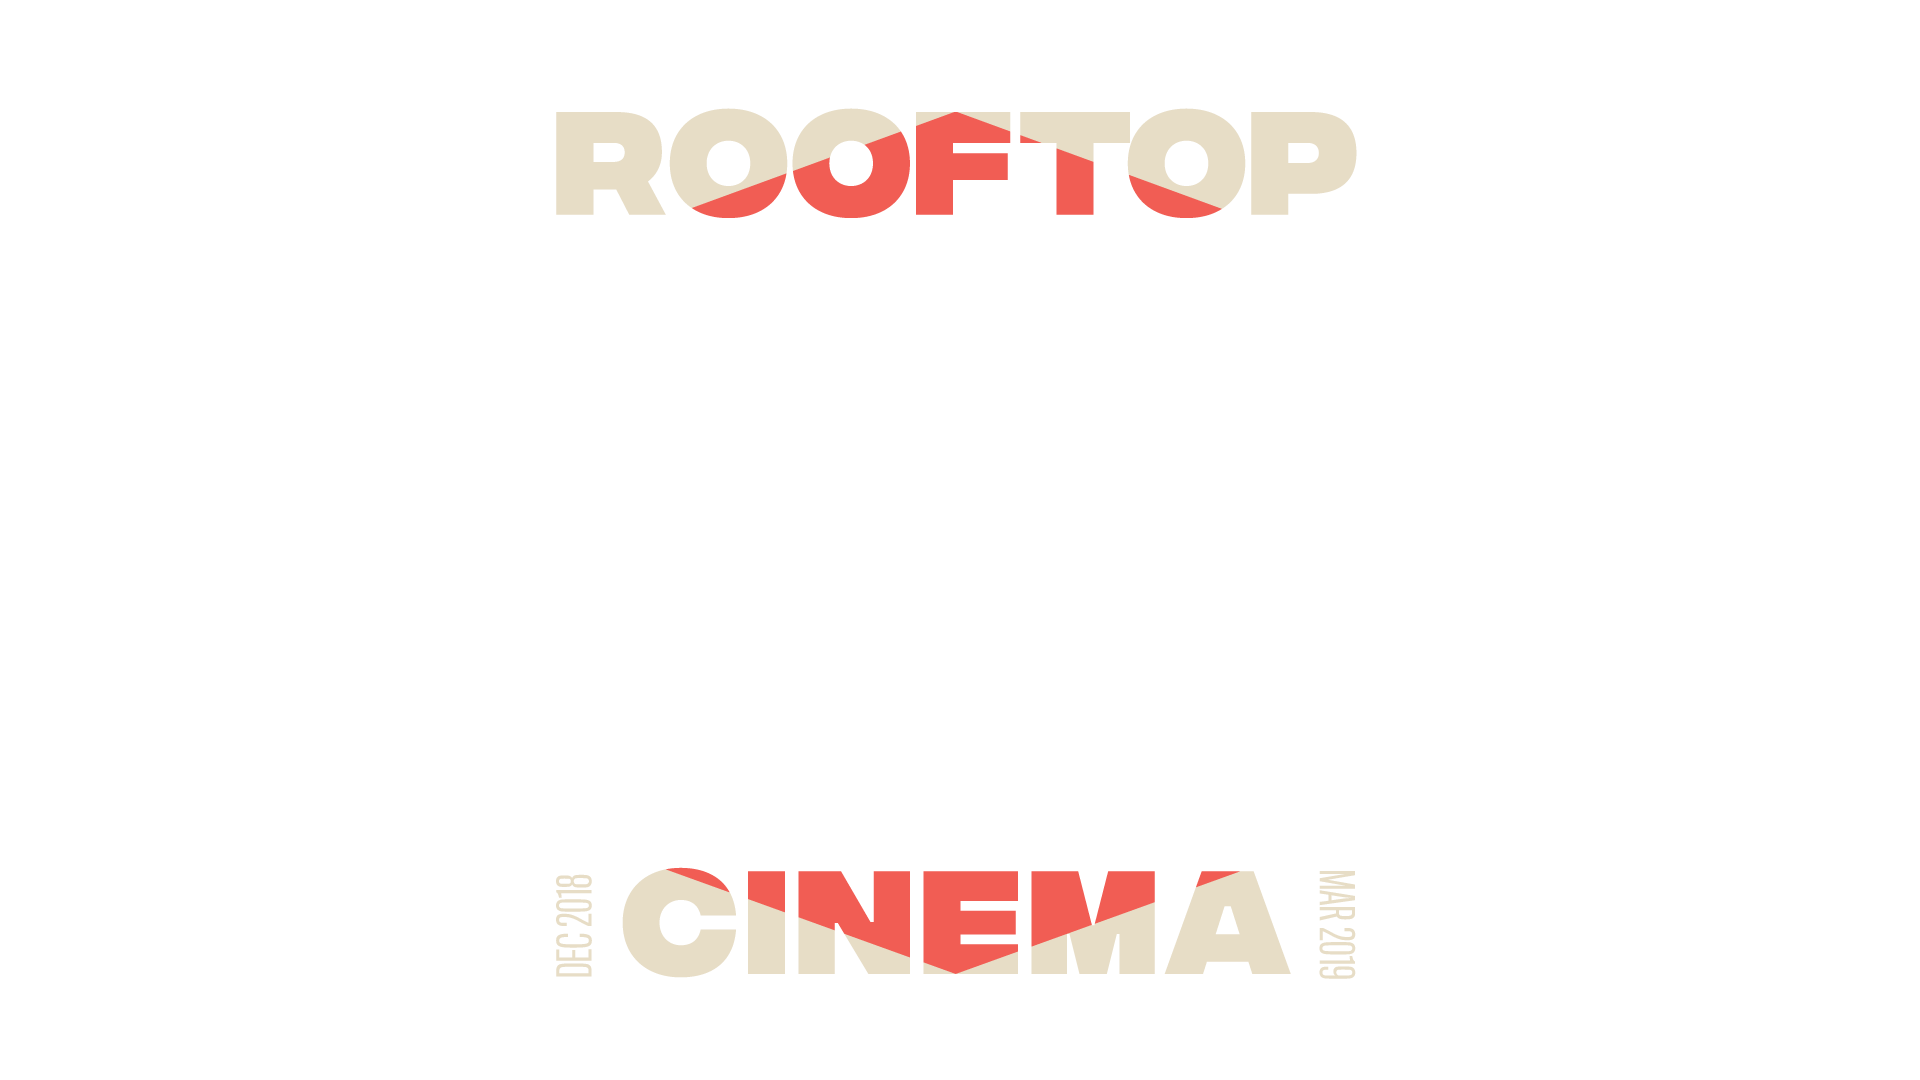 ROOFTOP CINEMA